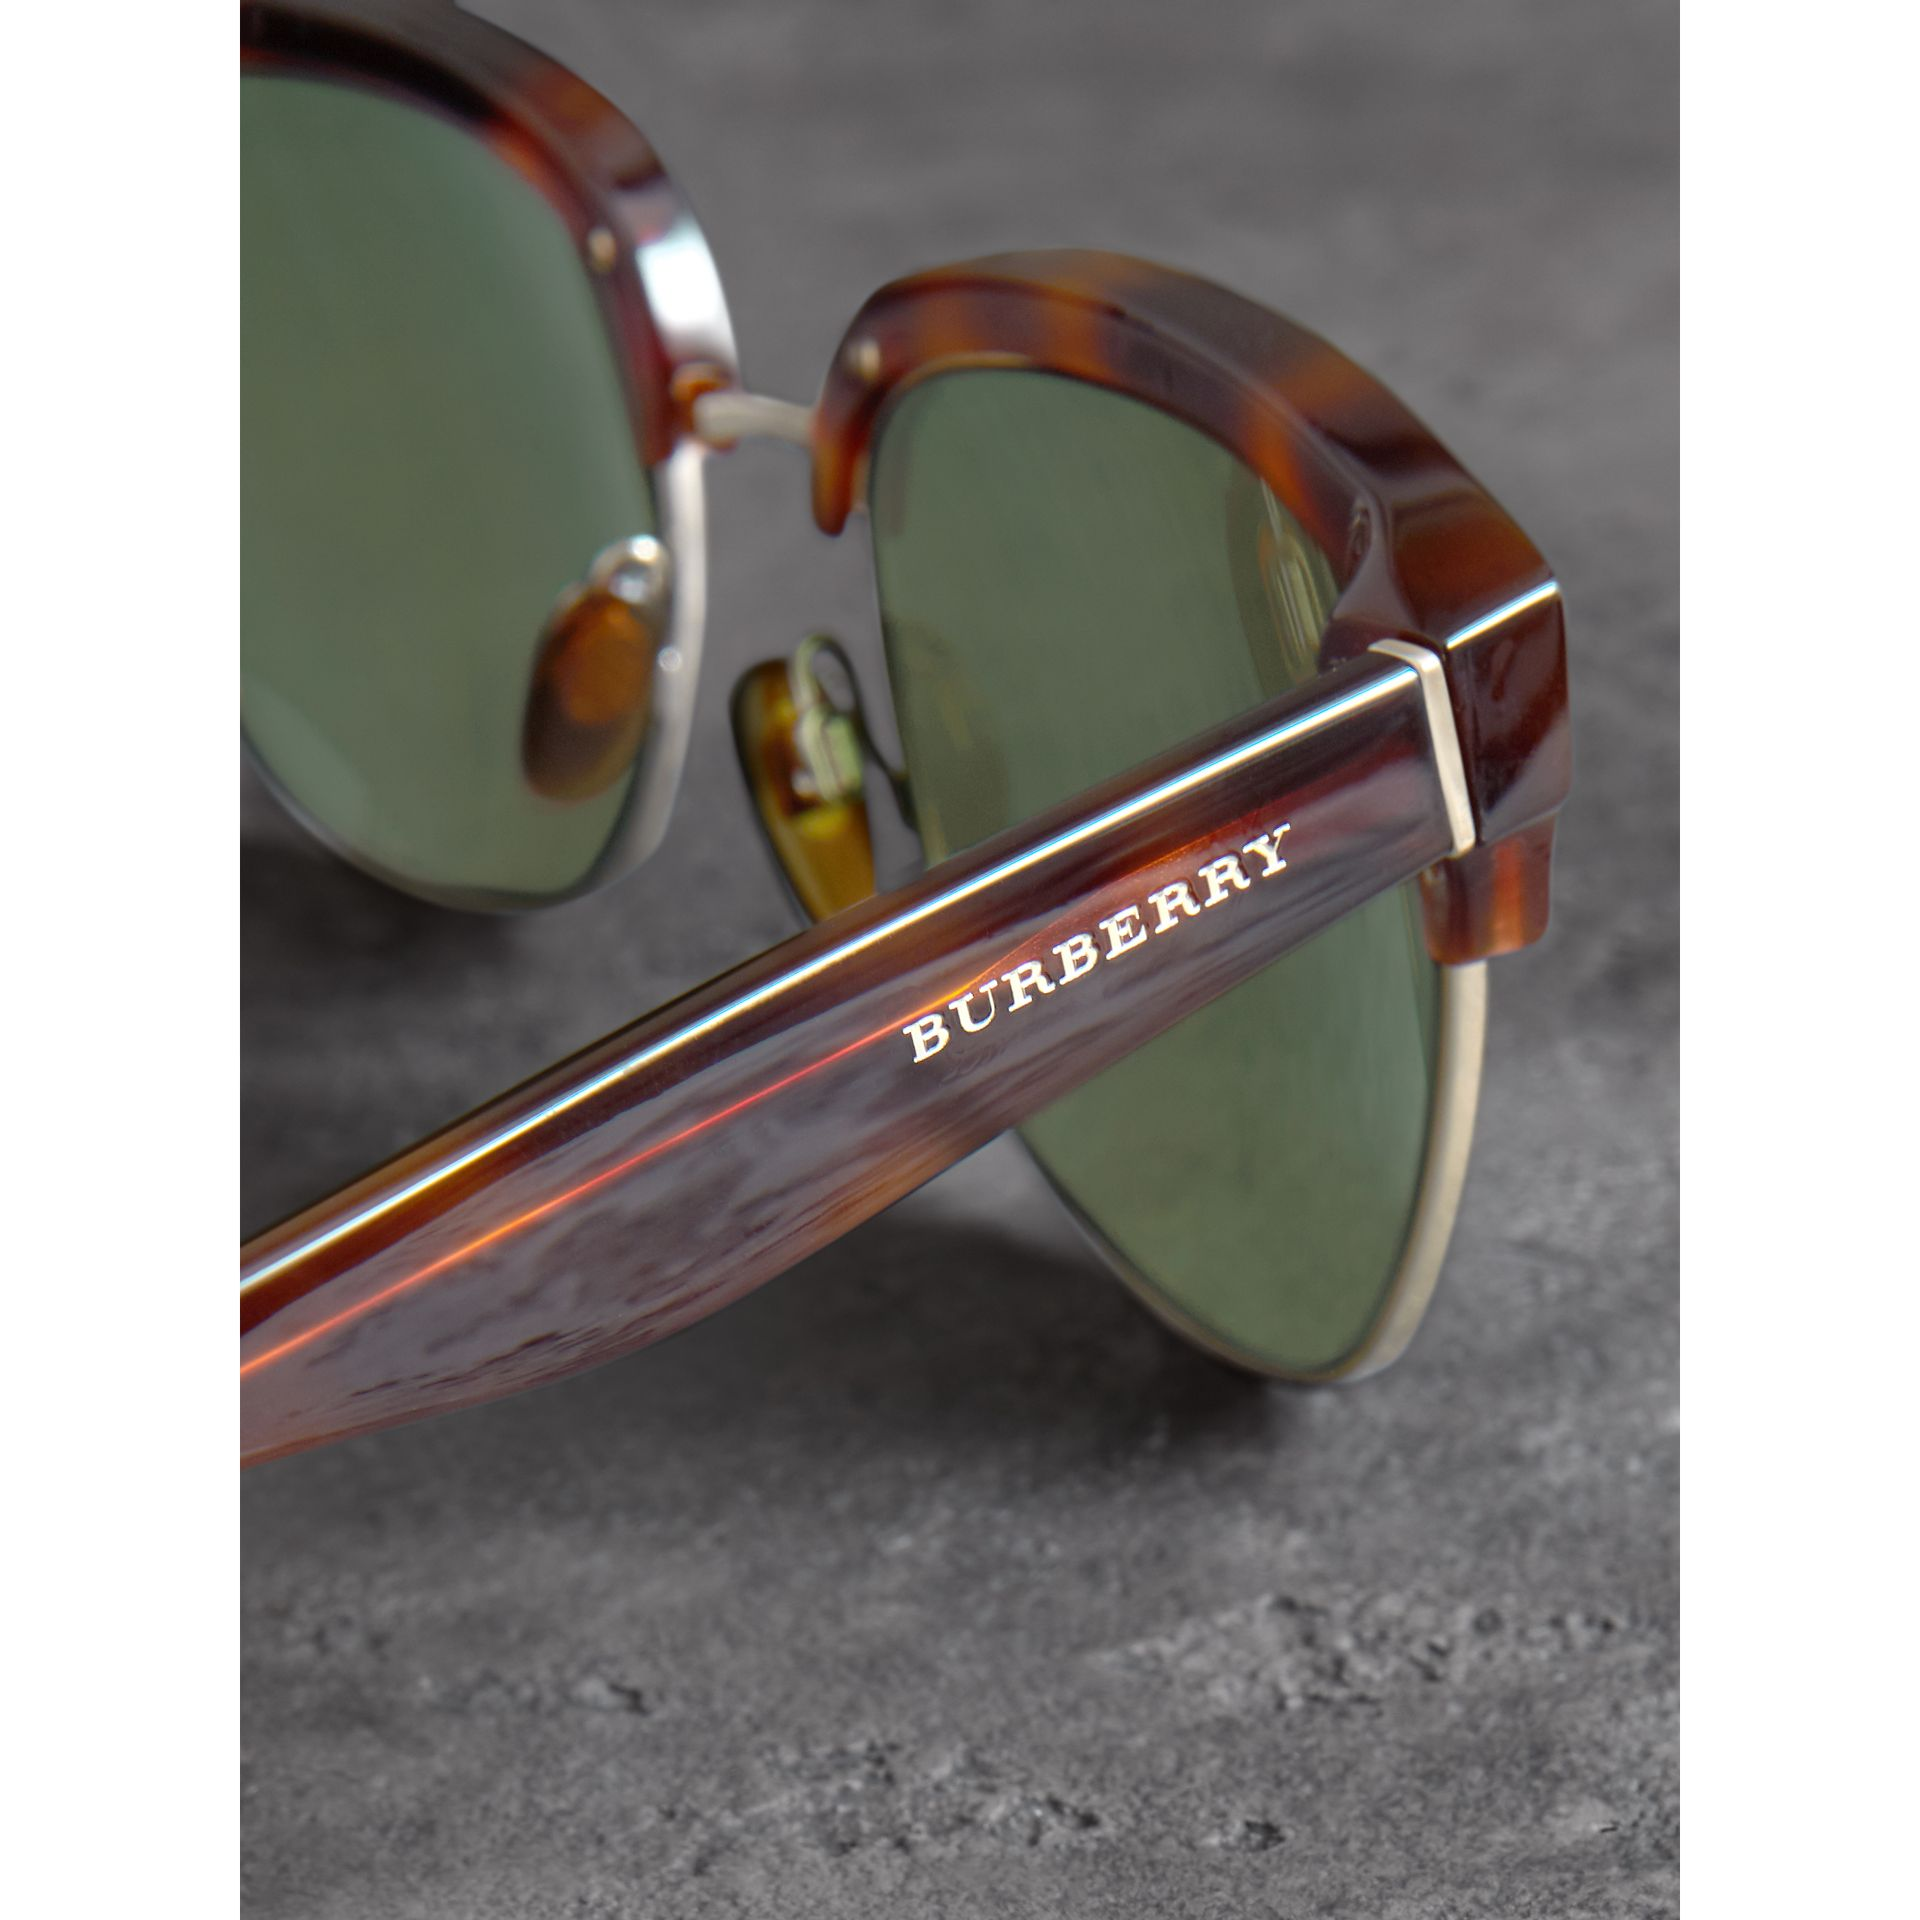 D-frame Sunglasses in Tortoise Shell - Men | Burberry Australia - gallery image 1